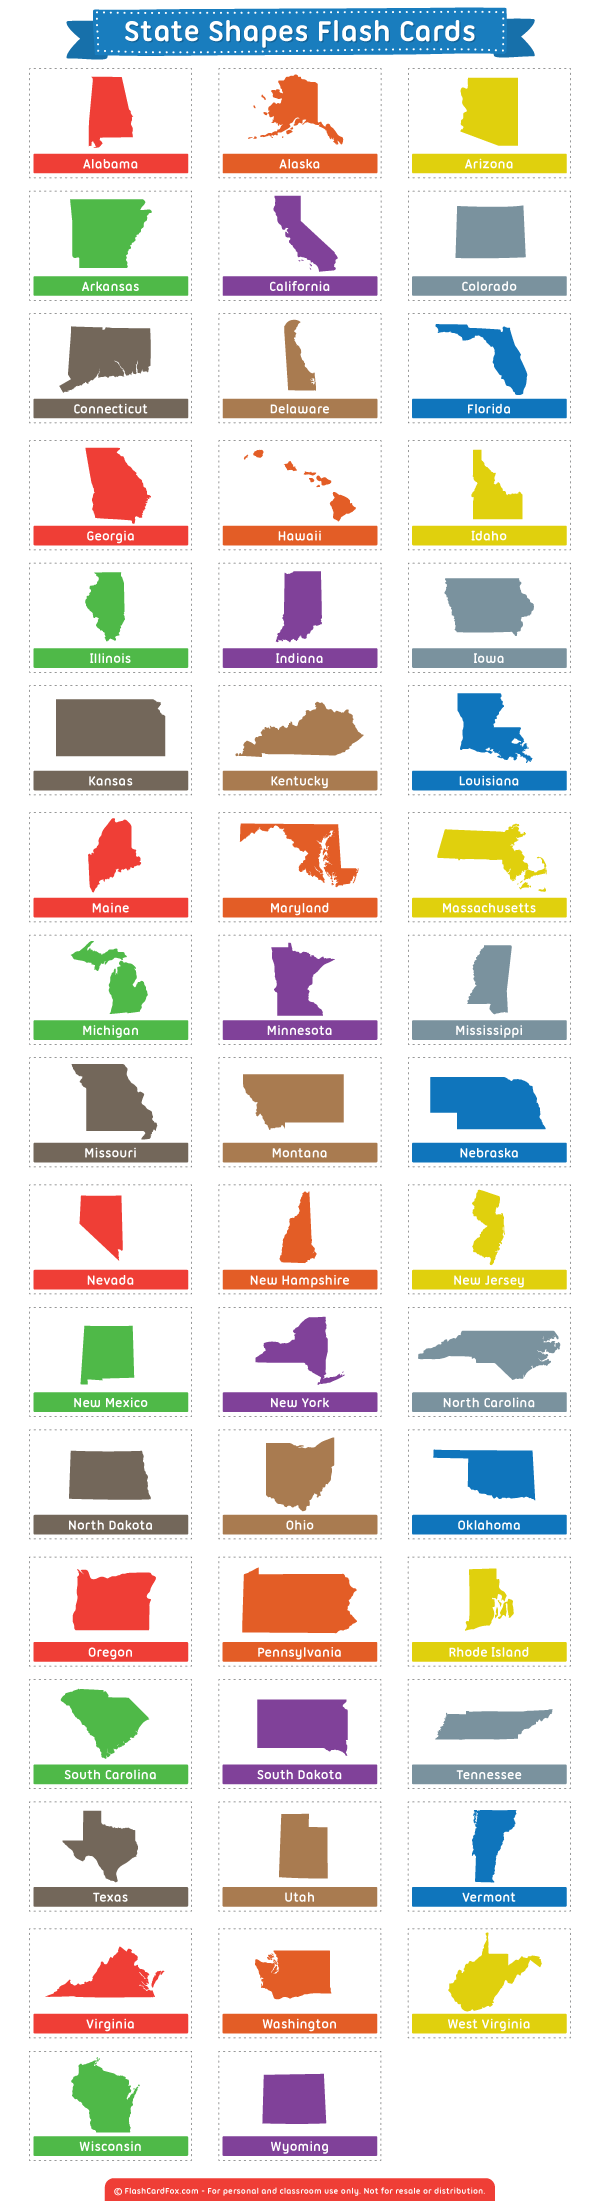 Free Printable State Shapes Flash Cards Download Them In Pdf Format At Http Flashcardfox Com Download State S Flashcards State Shapes Vocabulary Flash Cards